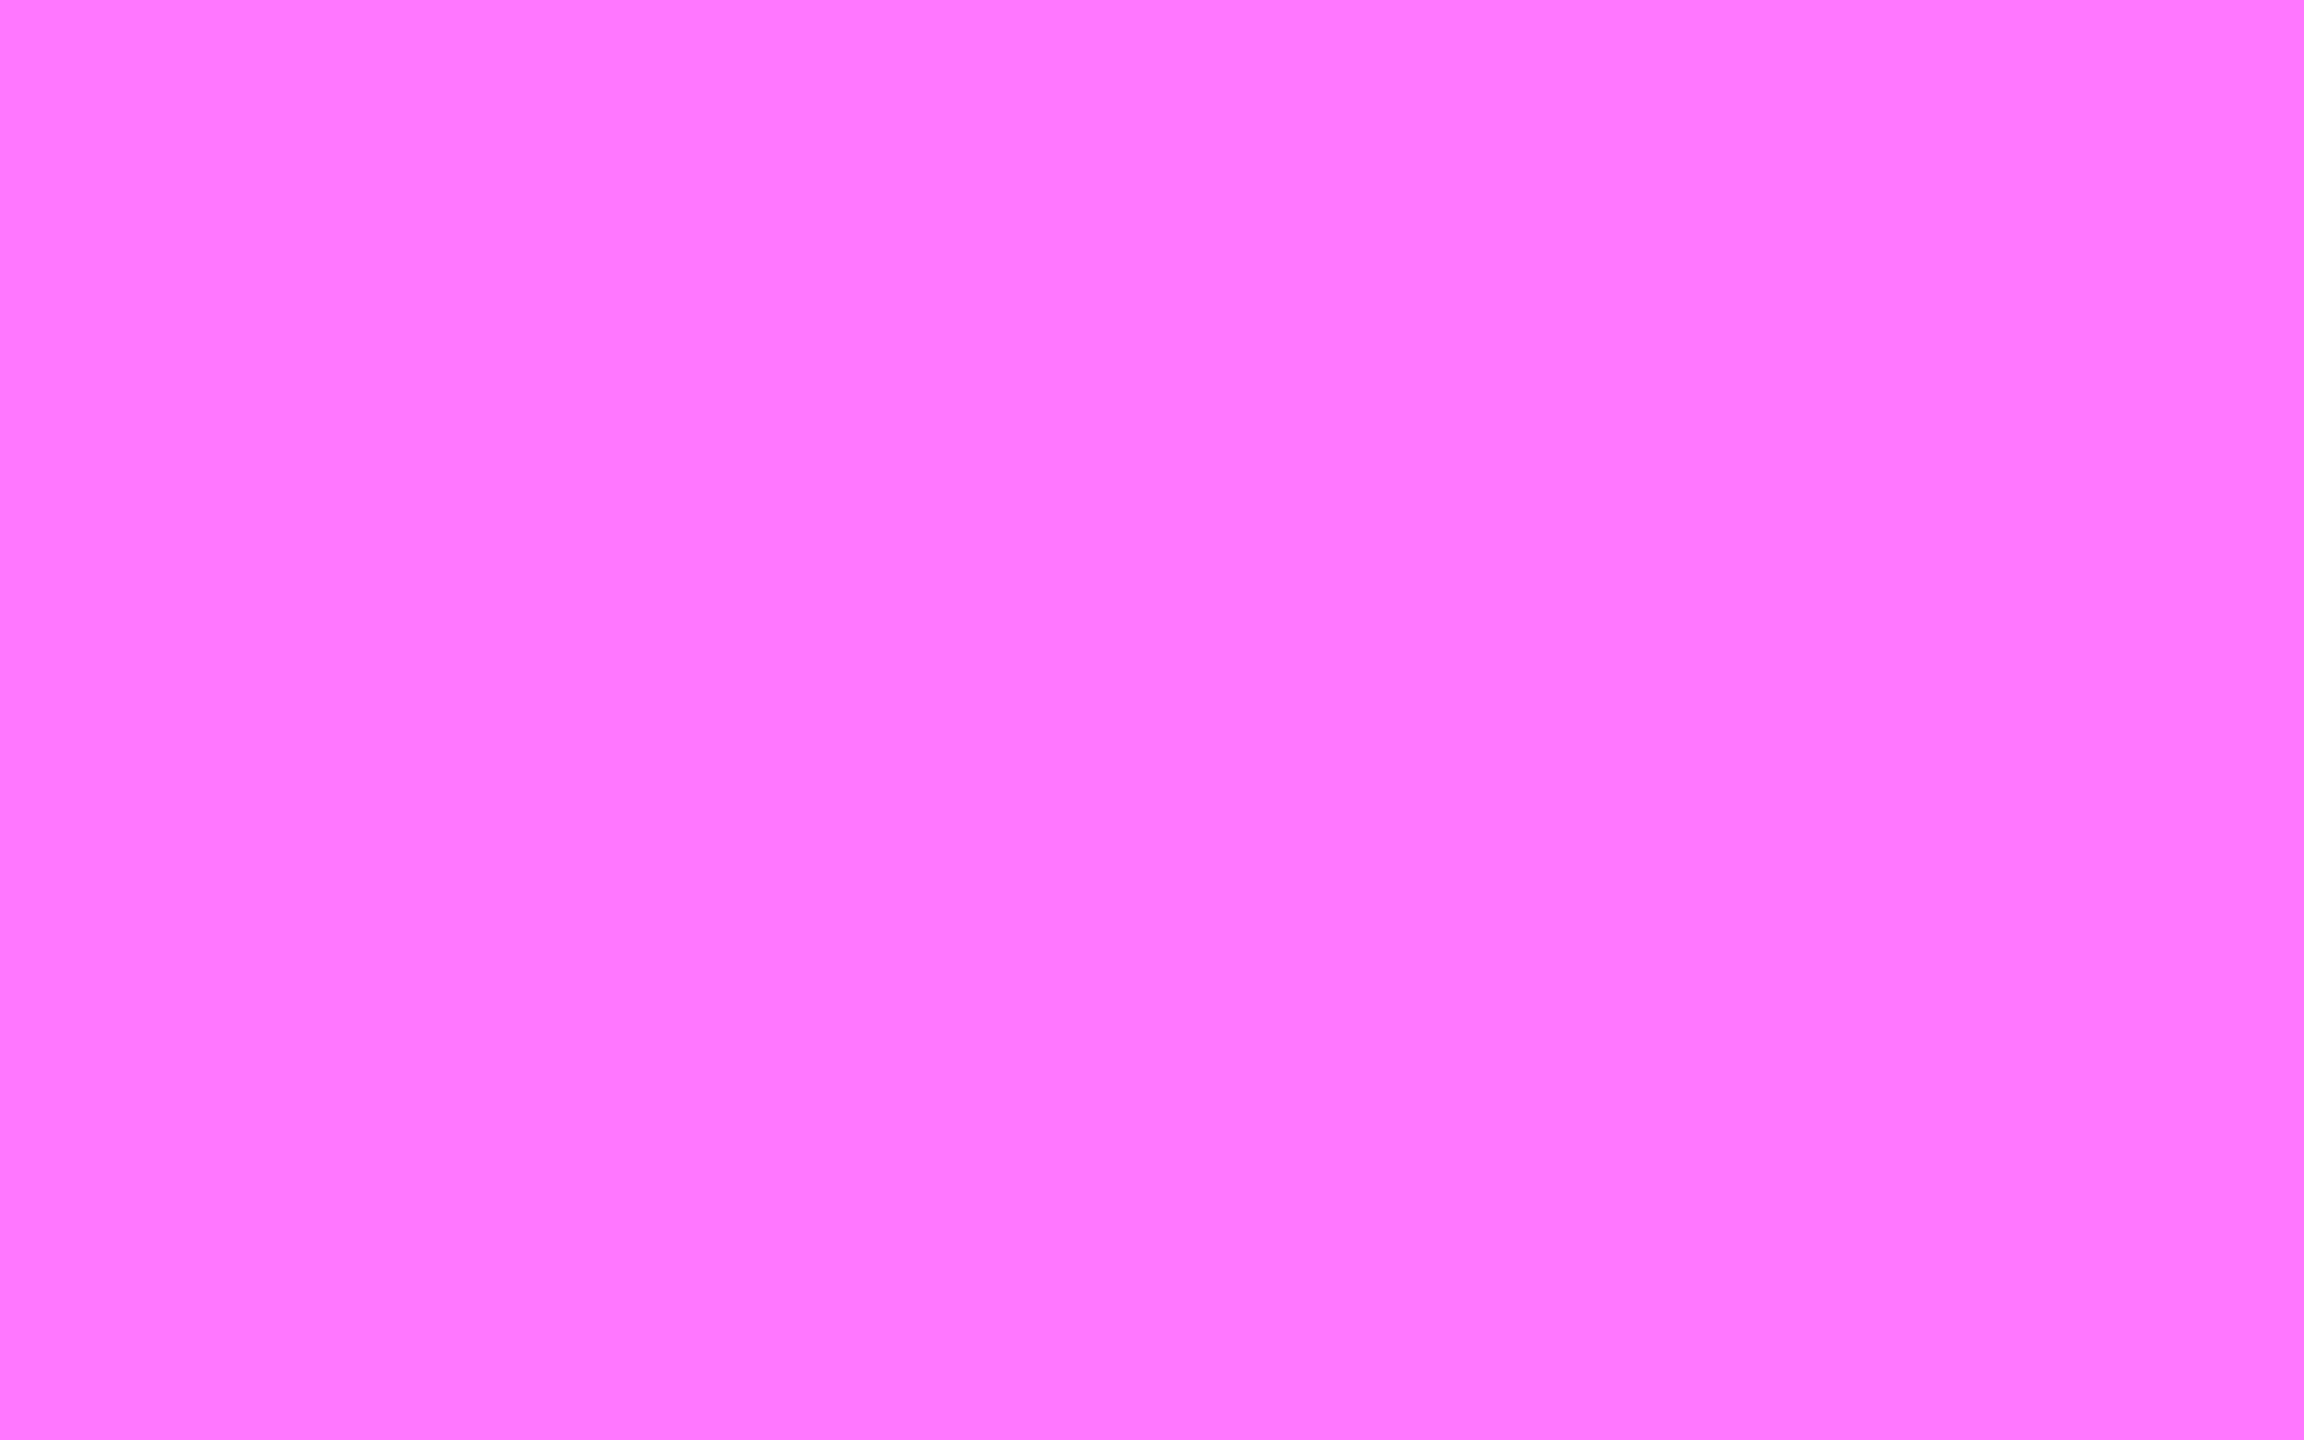 2304x1440 Fuchsia Pink Solid Color Background